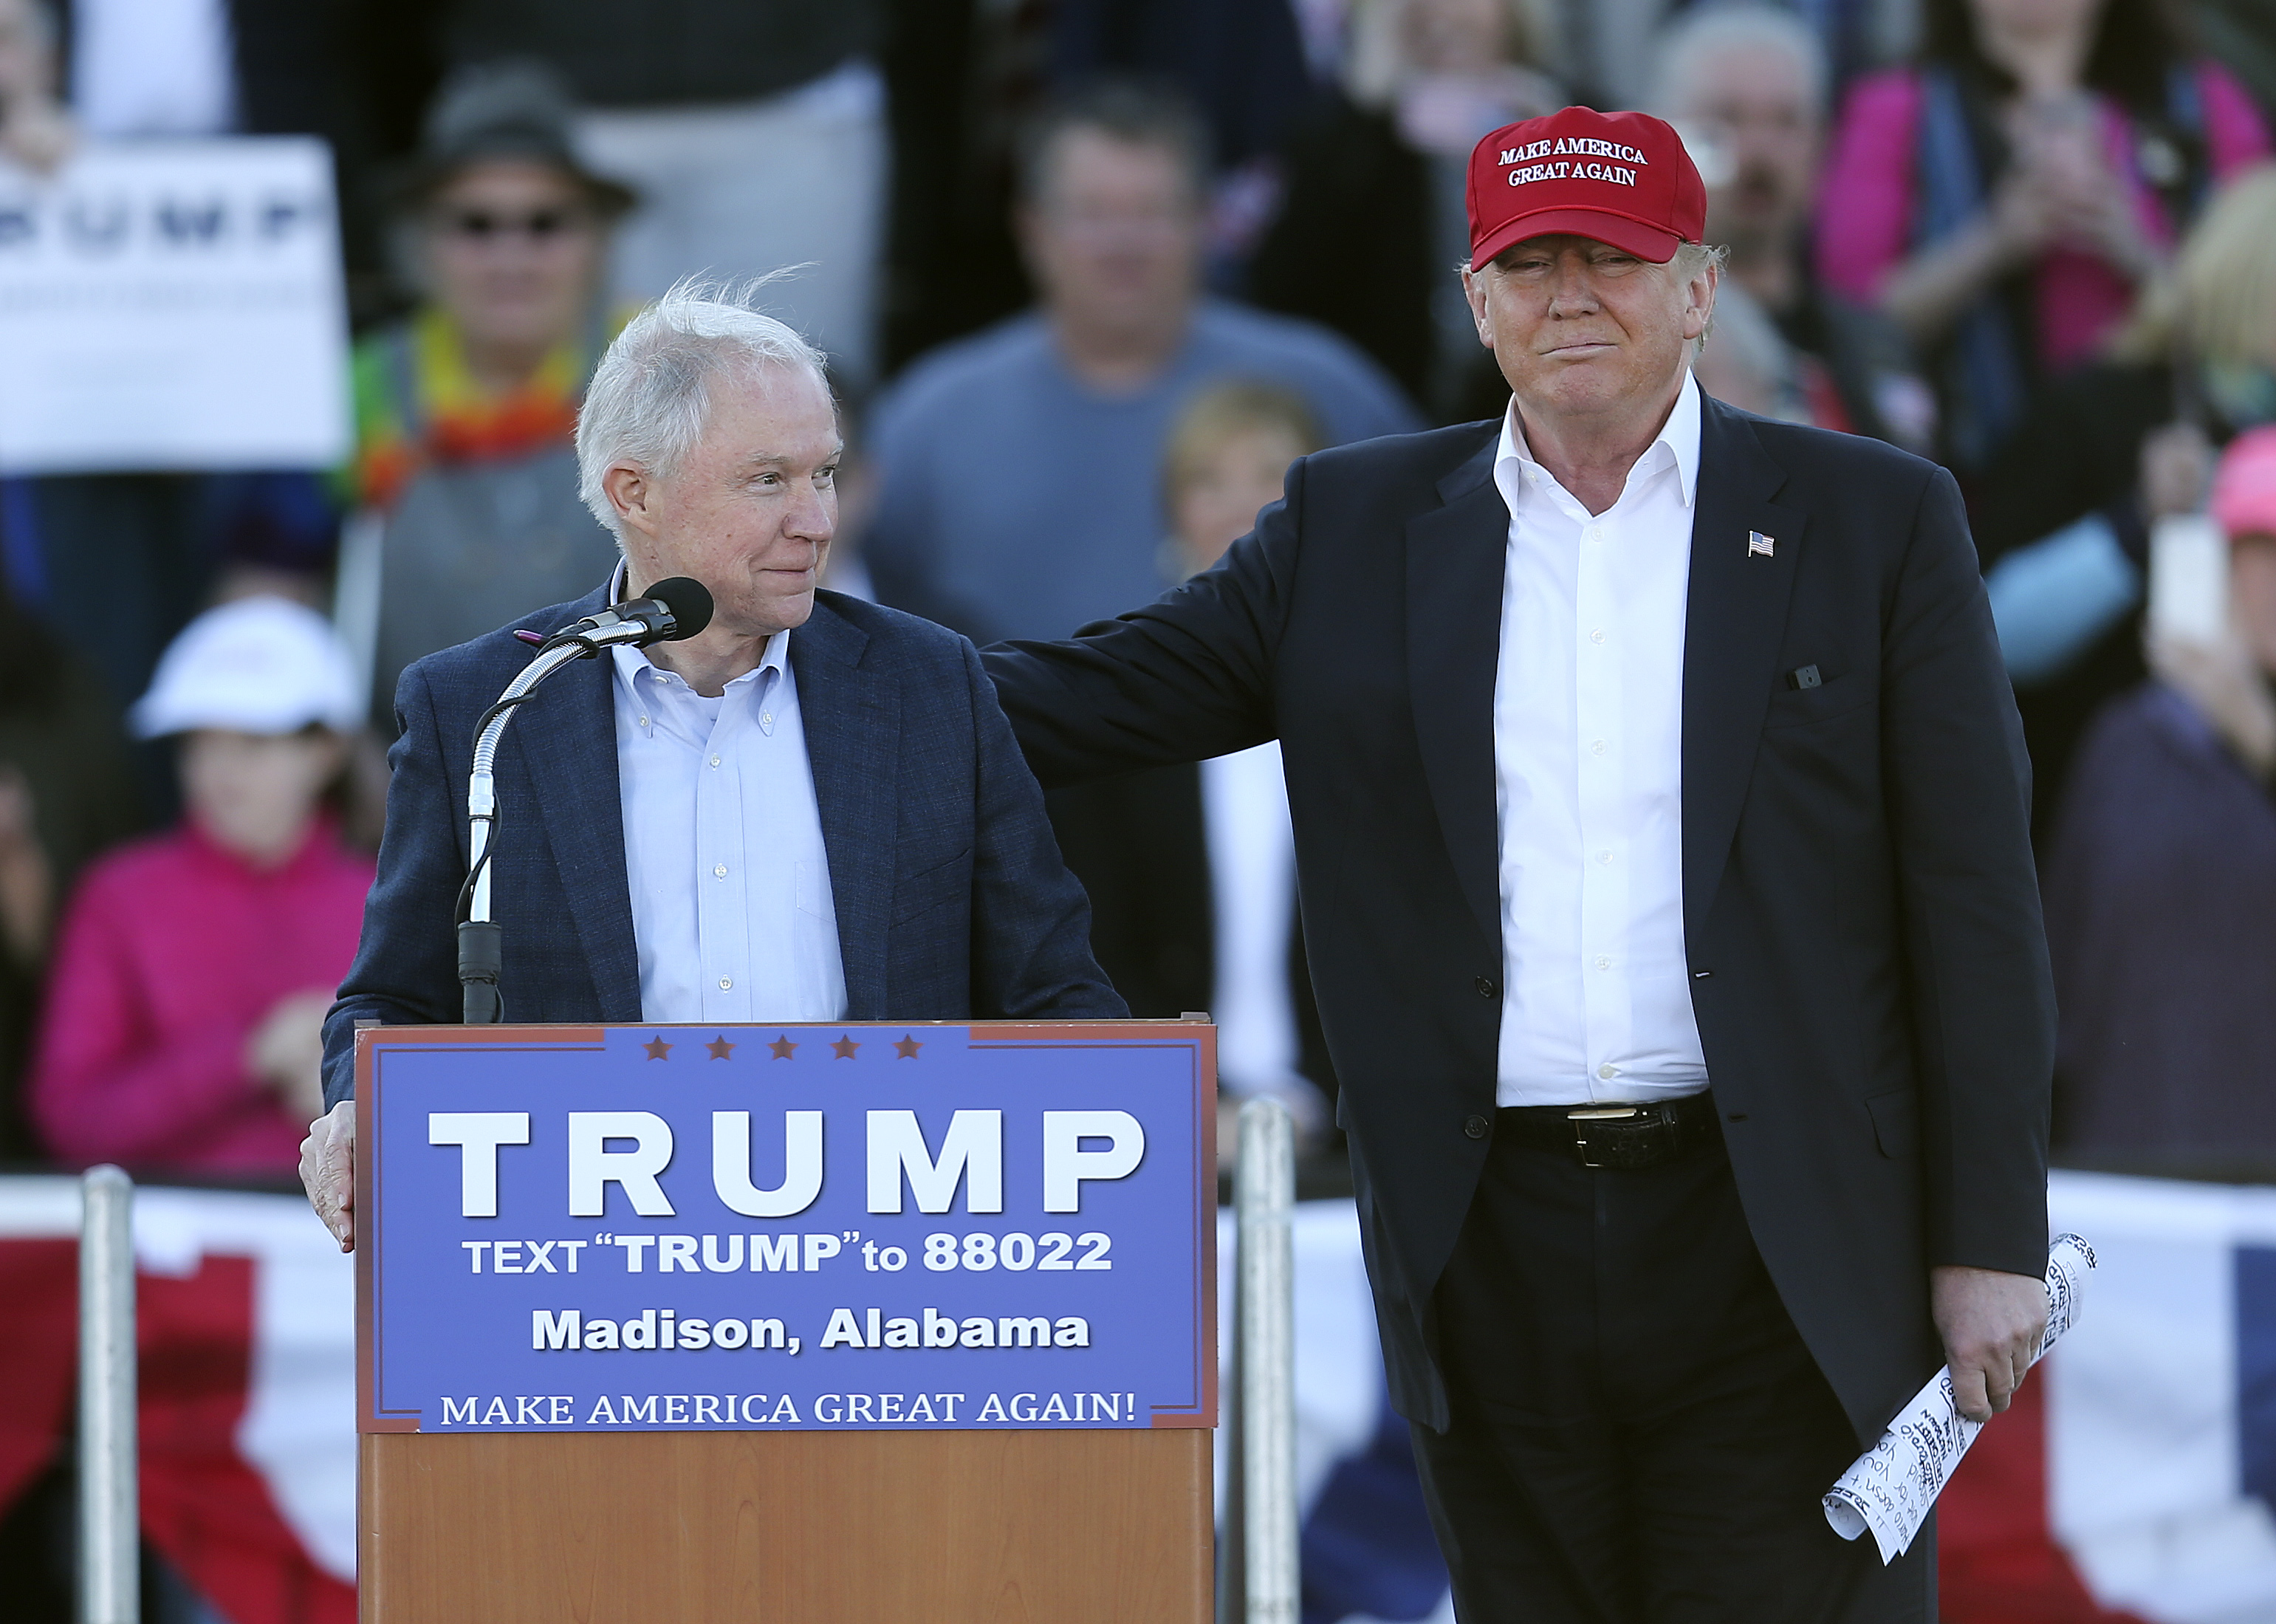 Republican presidential candidate Donald Trump, right, stands next to Sen. Jeff Sessions, R-Ala., as Sessions speaks  during a rally Sunday, Feb. 28, 2016, in Madison, Ala.